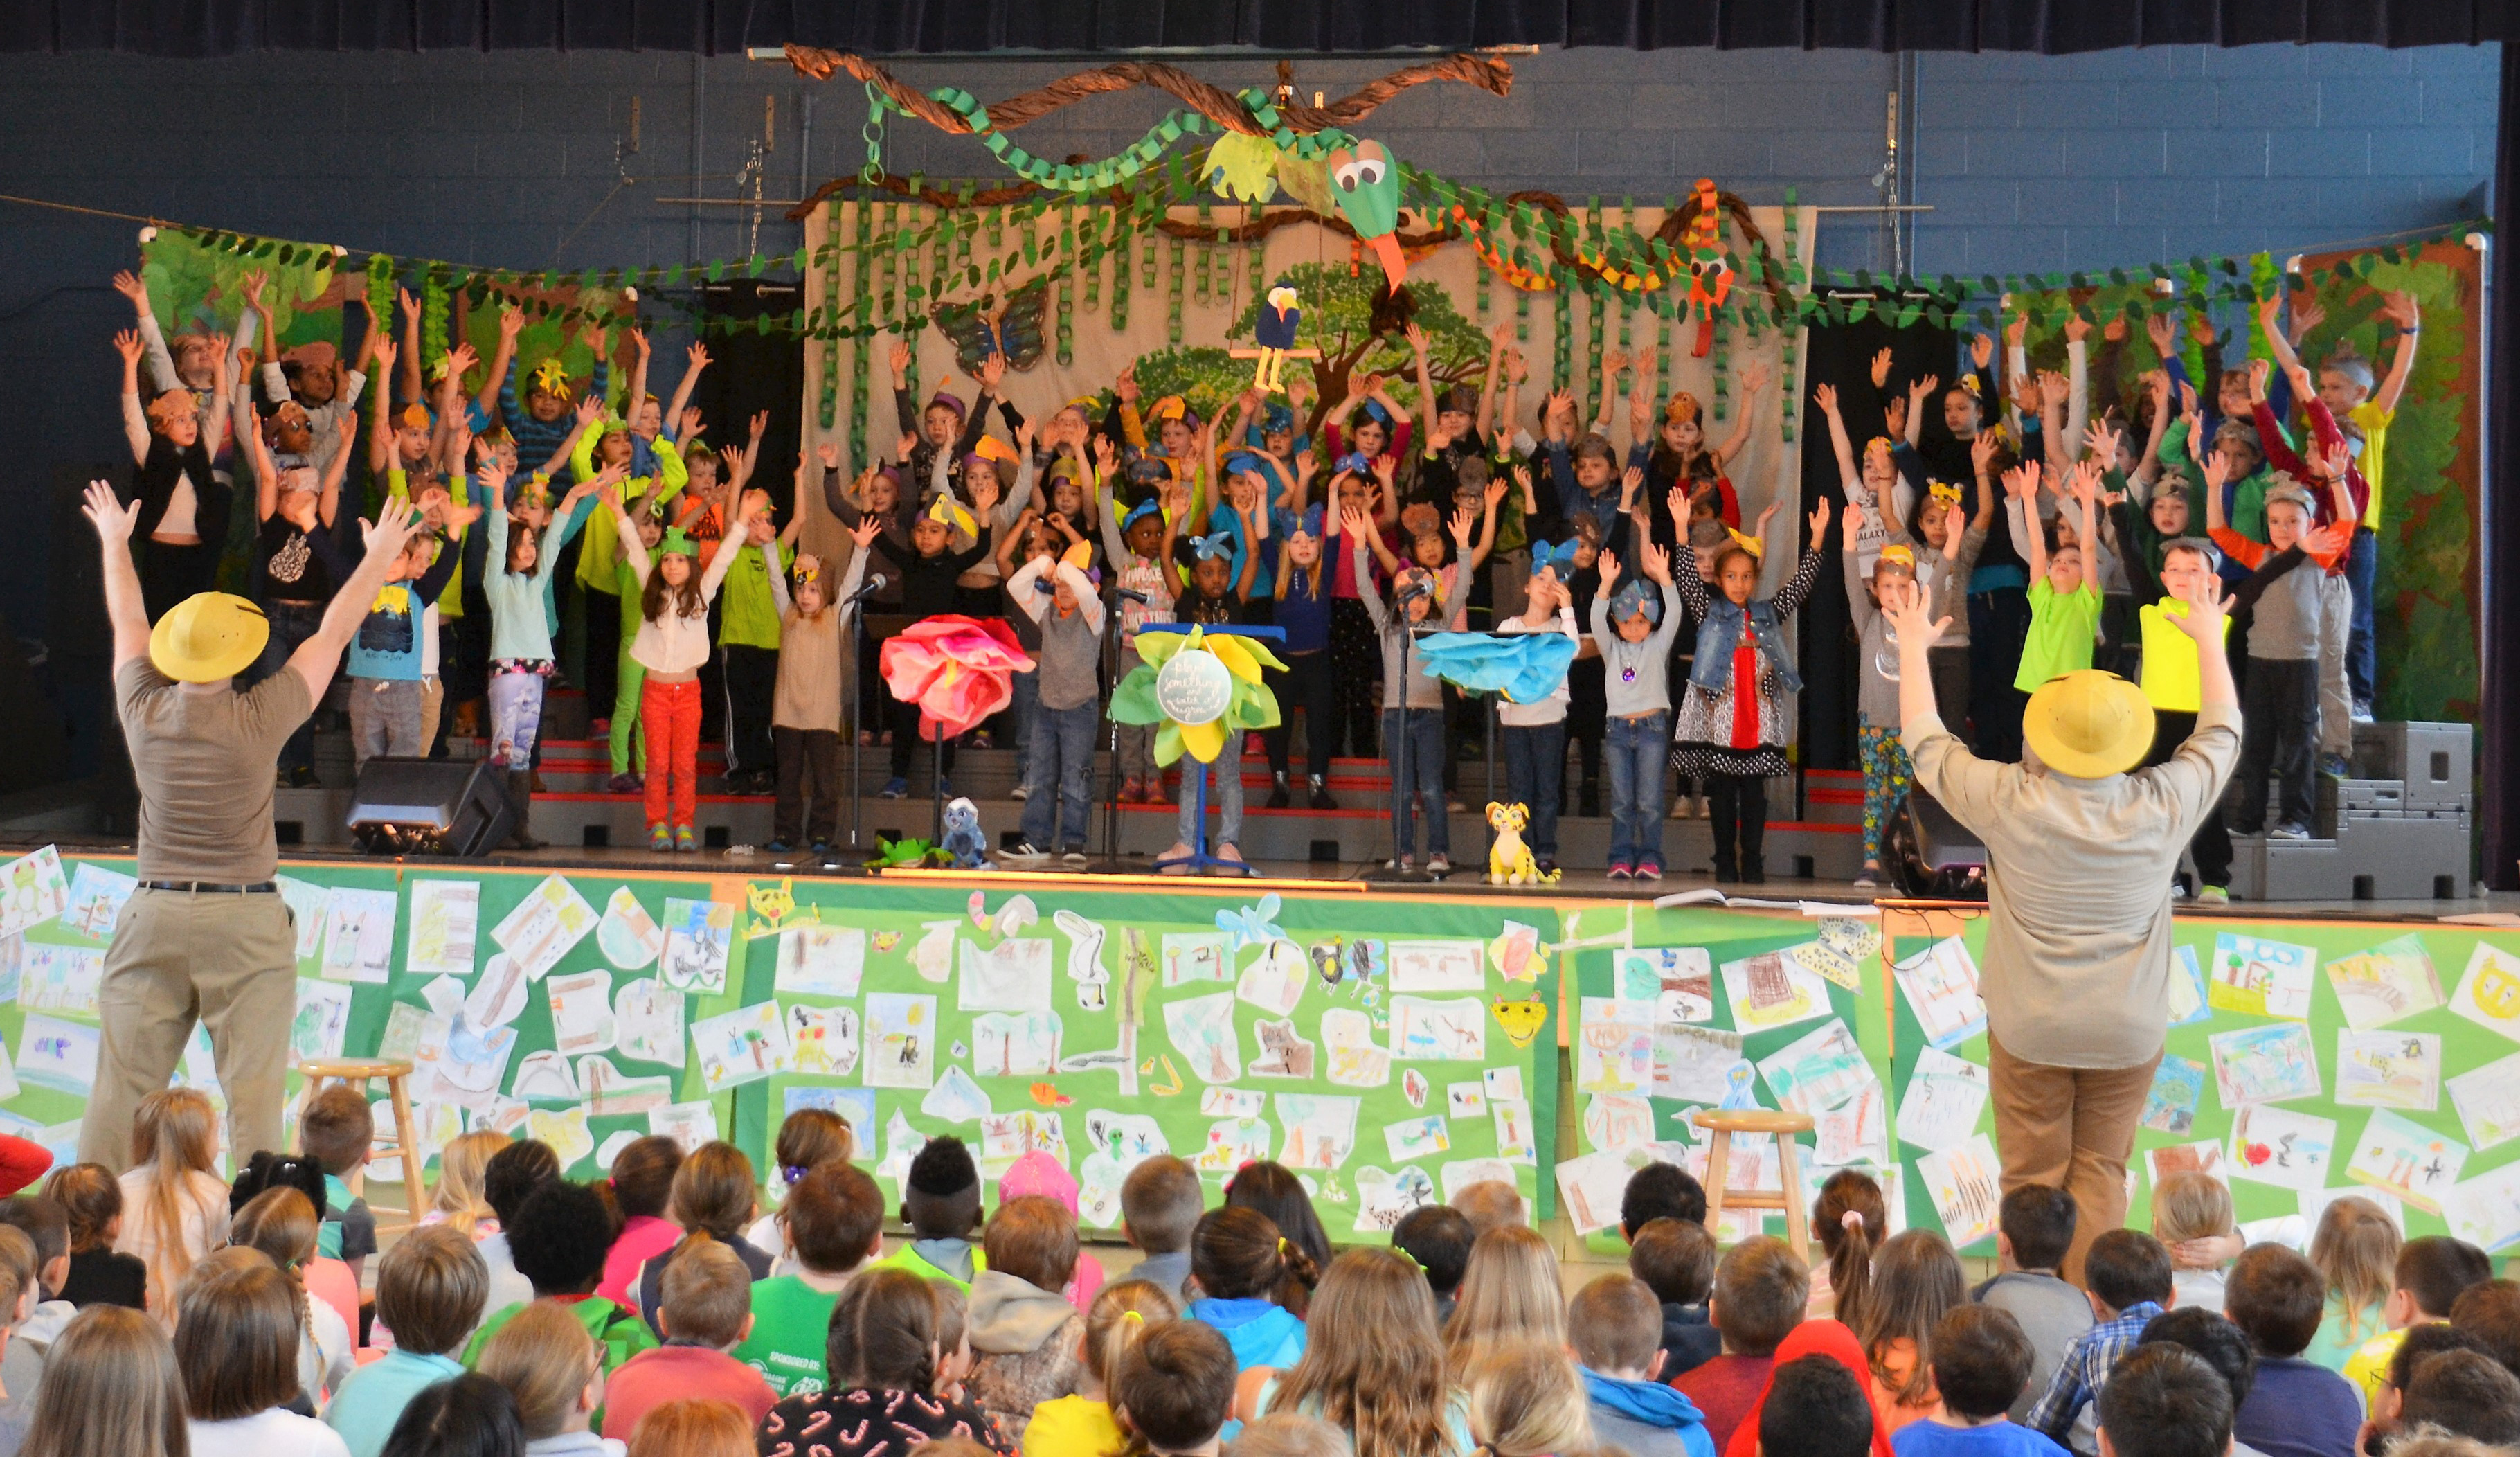 Students on stage performing Singin' in the Rainforest